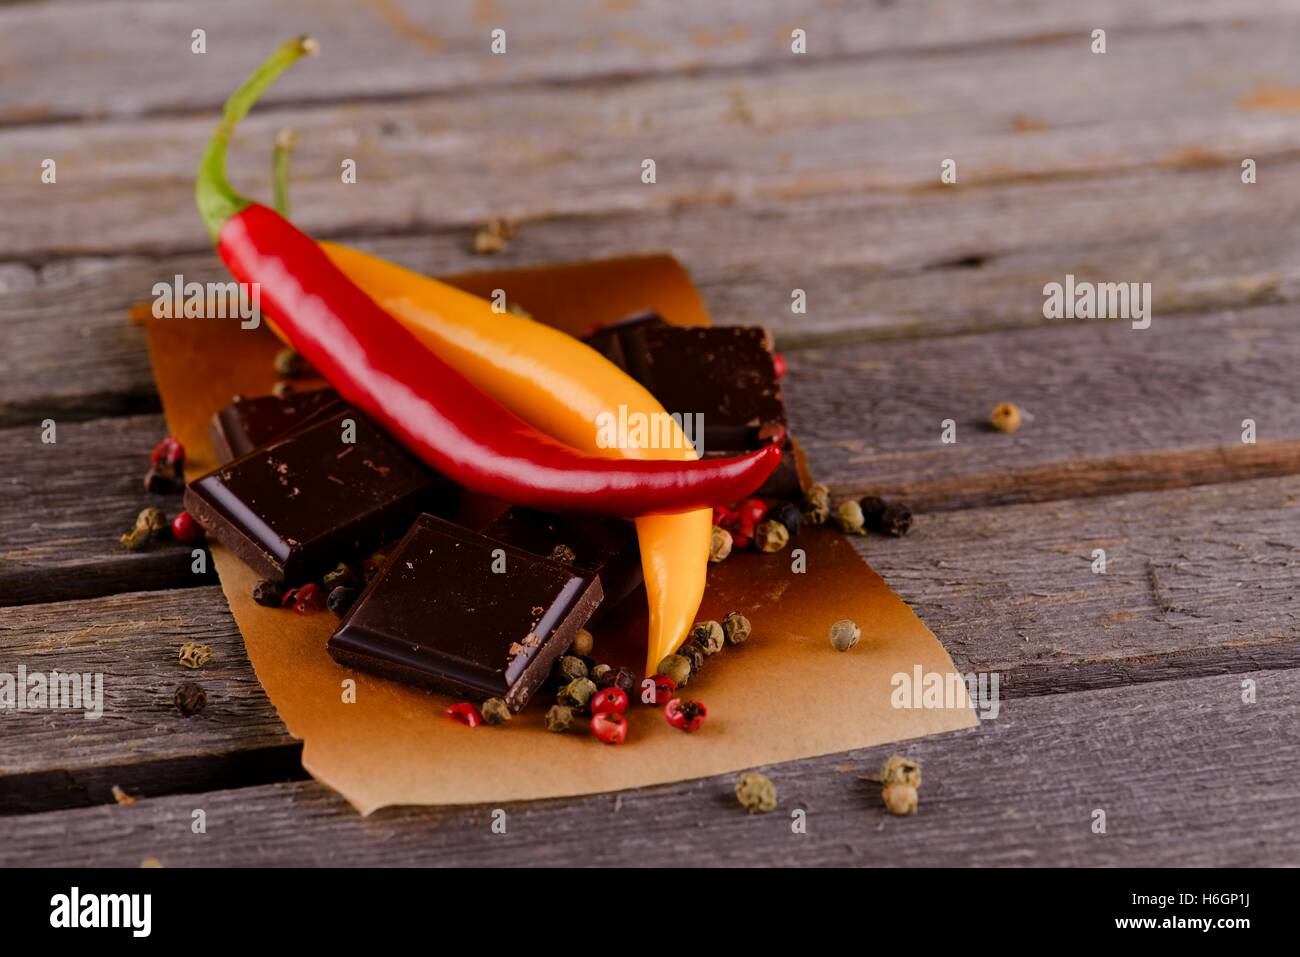 Horizontal photo of two chili peppers with yellow and red color and dark chocolate pieces on piece of paper with - Stock Image